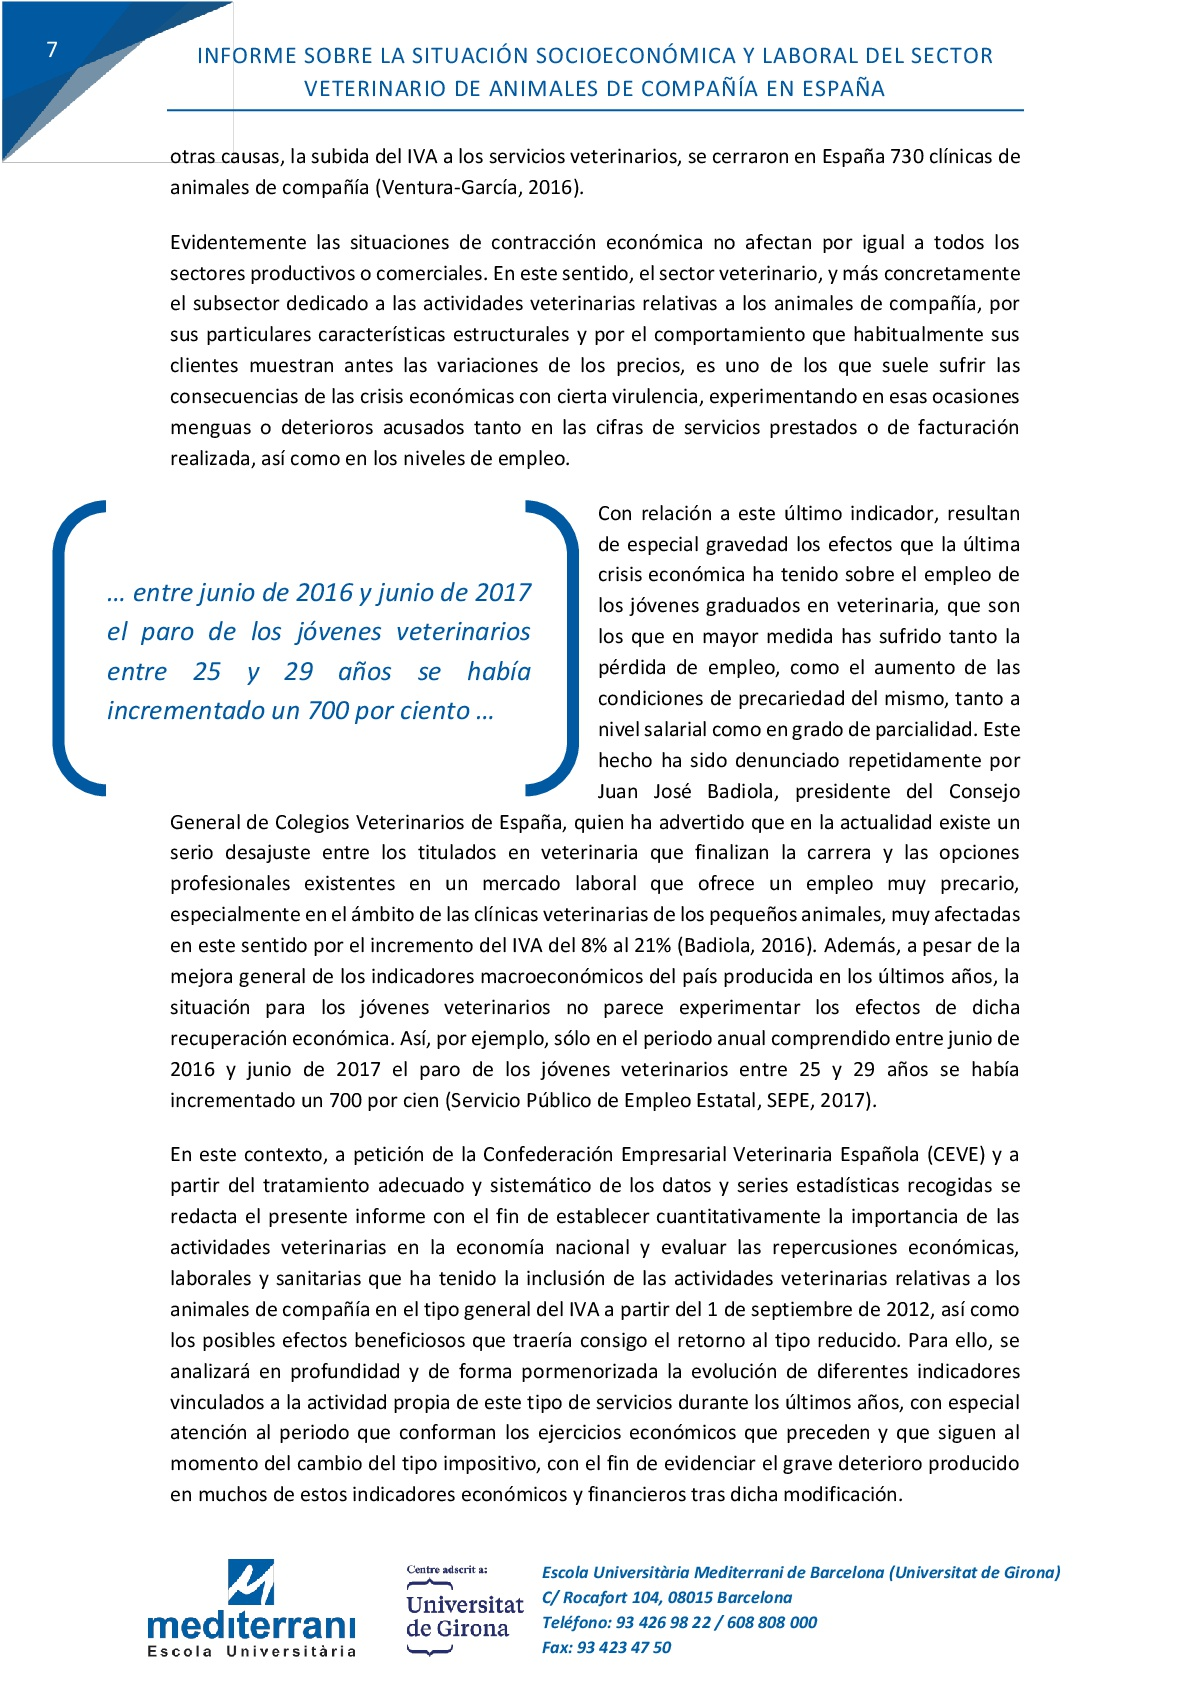 Informe-Veterinario-2017-+-informe-legal-2015-(3)-012